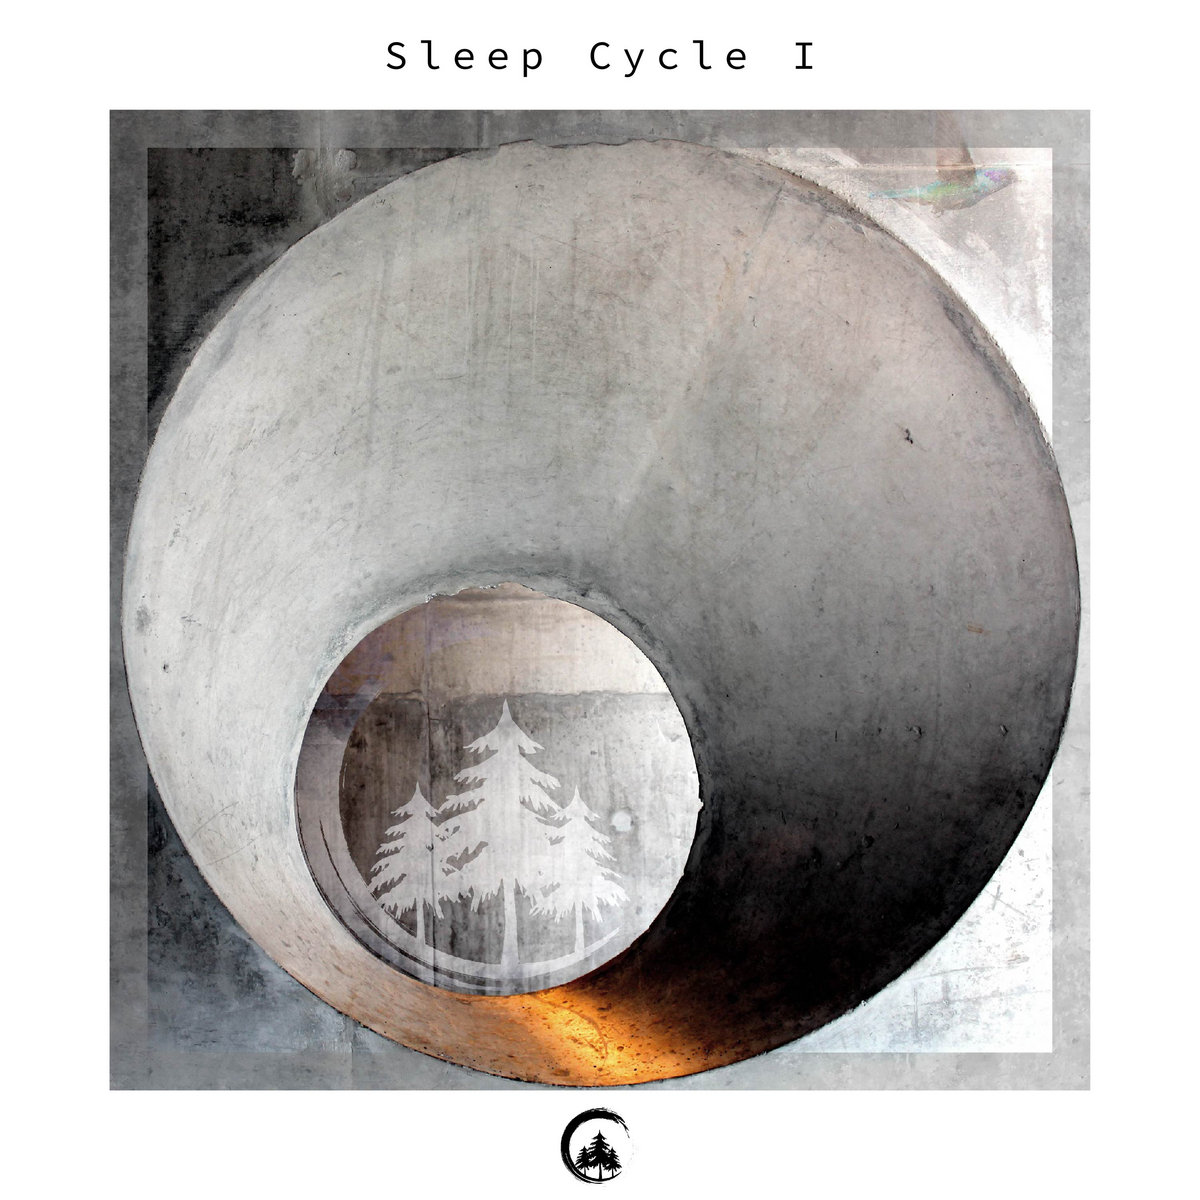 Perry Frank - Janas - Sleep Cycle 1 - Valley View Records - compilation - Australia - Sardegna - Bandcamp - ascolti - 19 febbraio 2021 - album - 2021 - Sa SCena - 1 marzo 2021